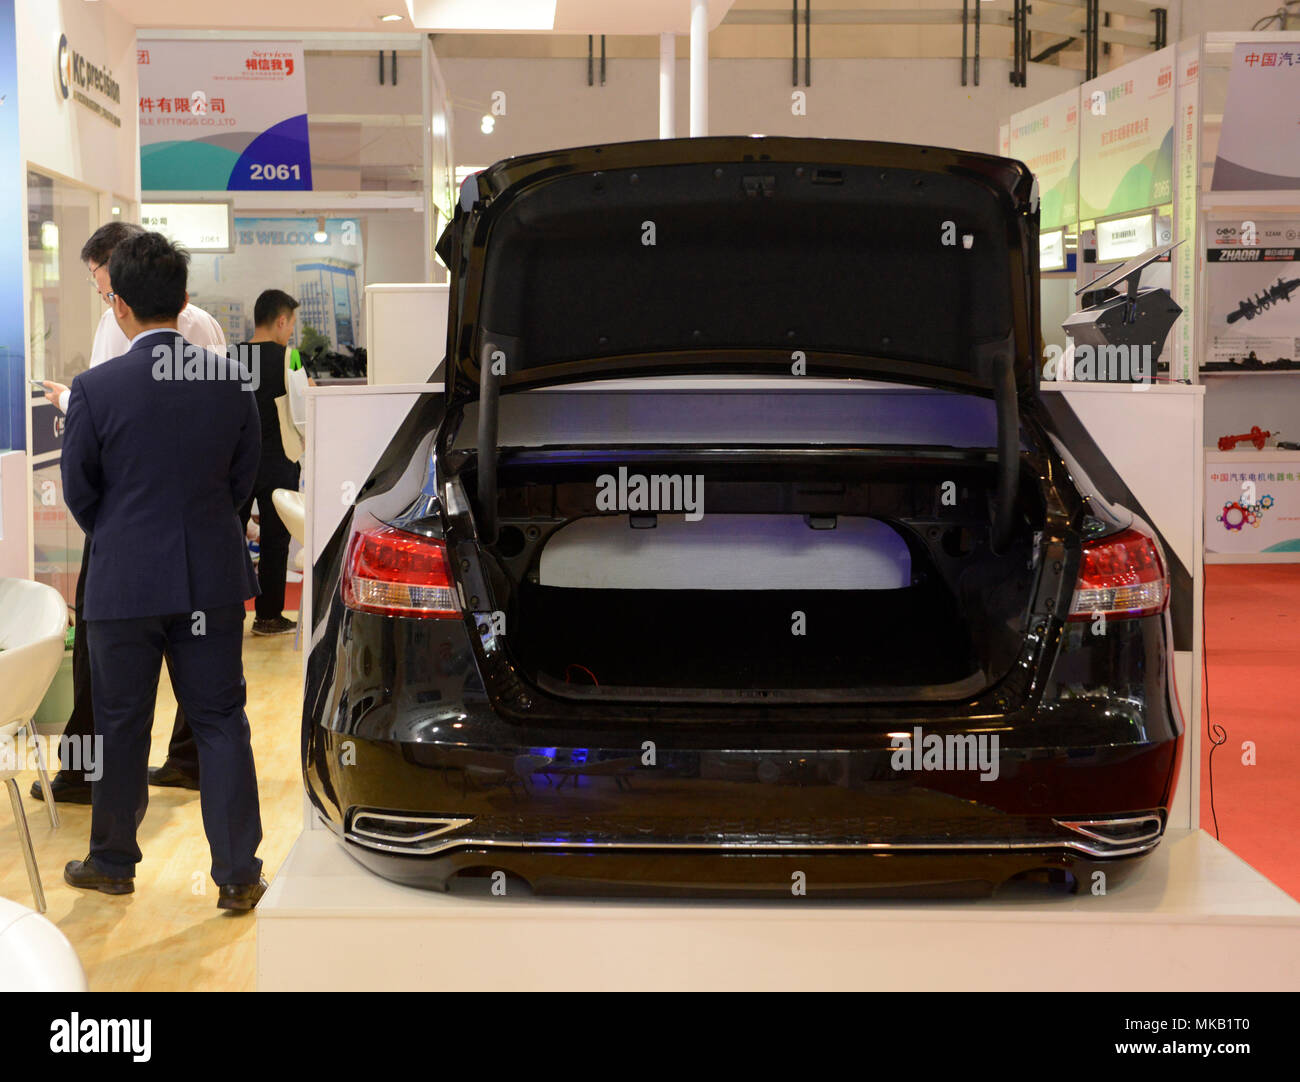 Boot or trunk of a car on show at the Auto China 2018 motor show in Beijing, China - Stock Image